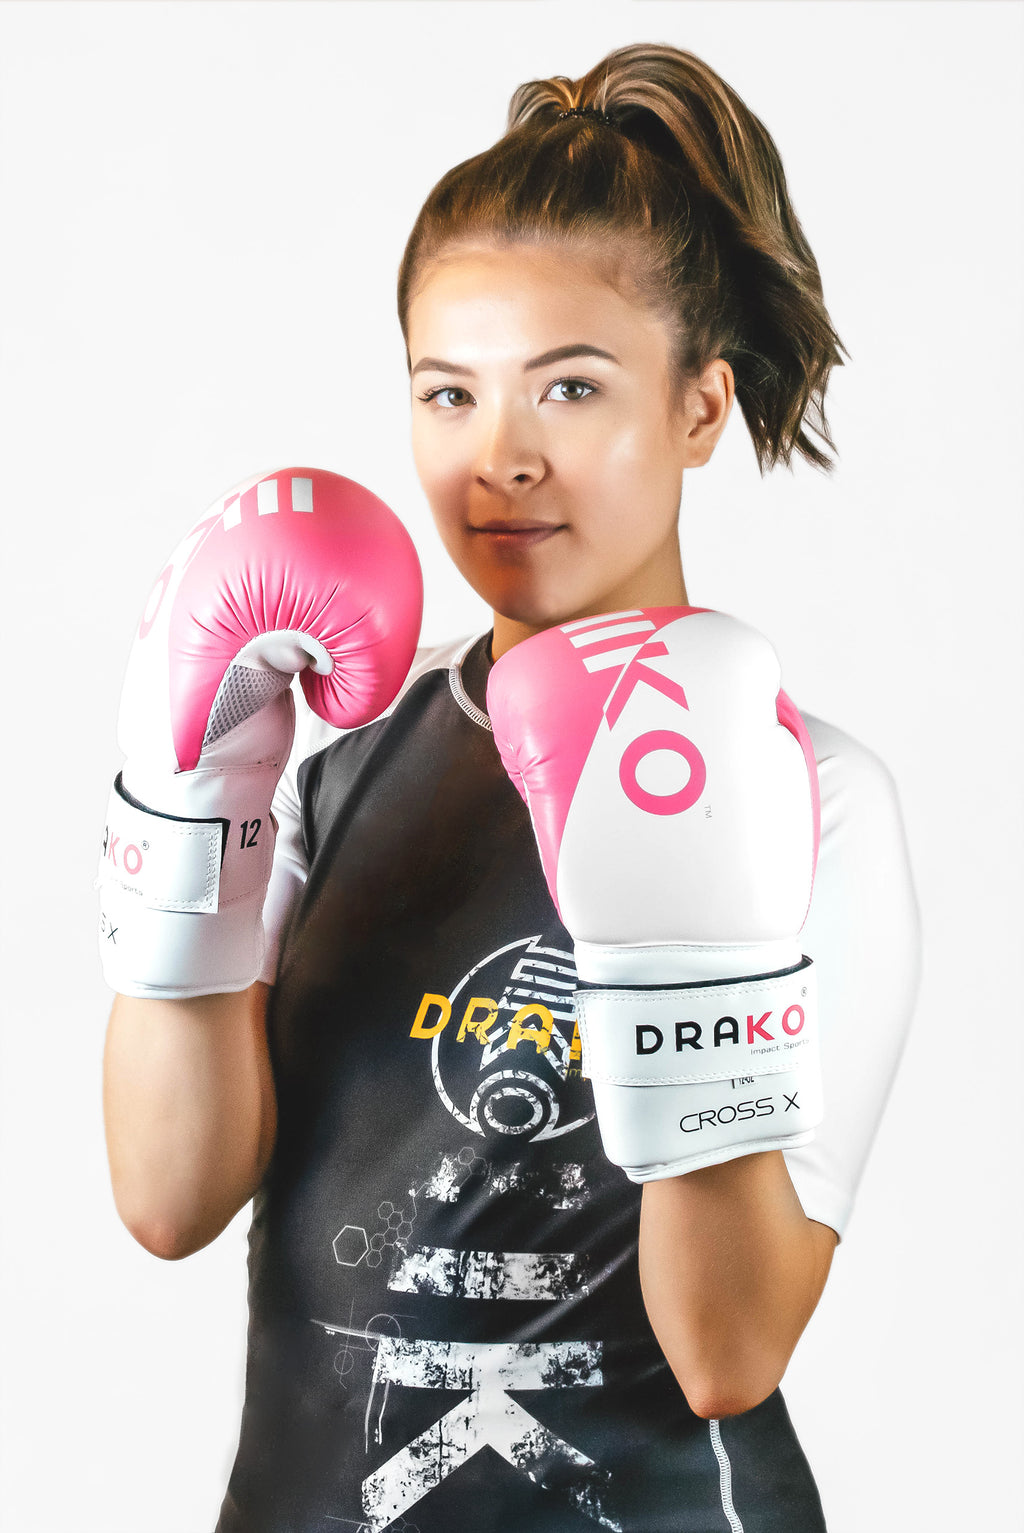 DRAKO CROSS X BOXING GLOVES